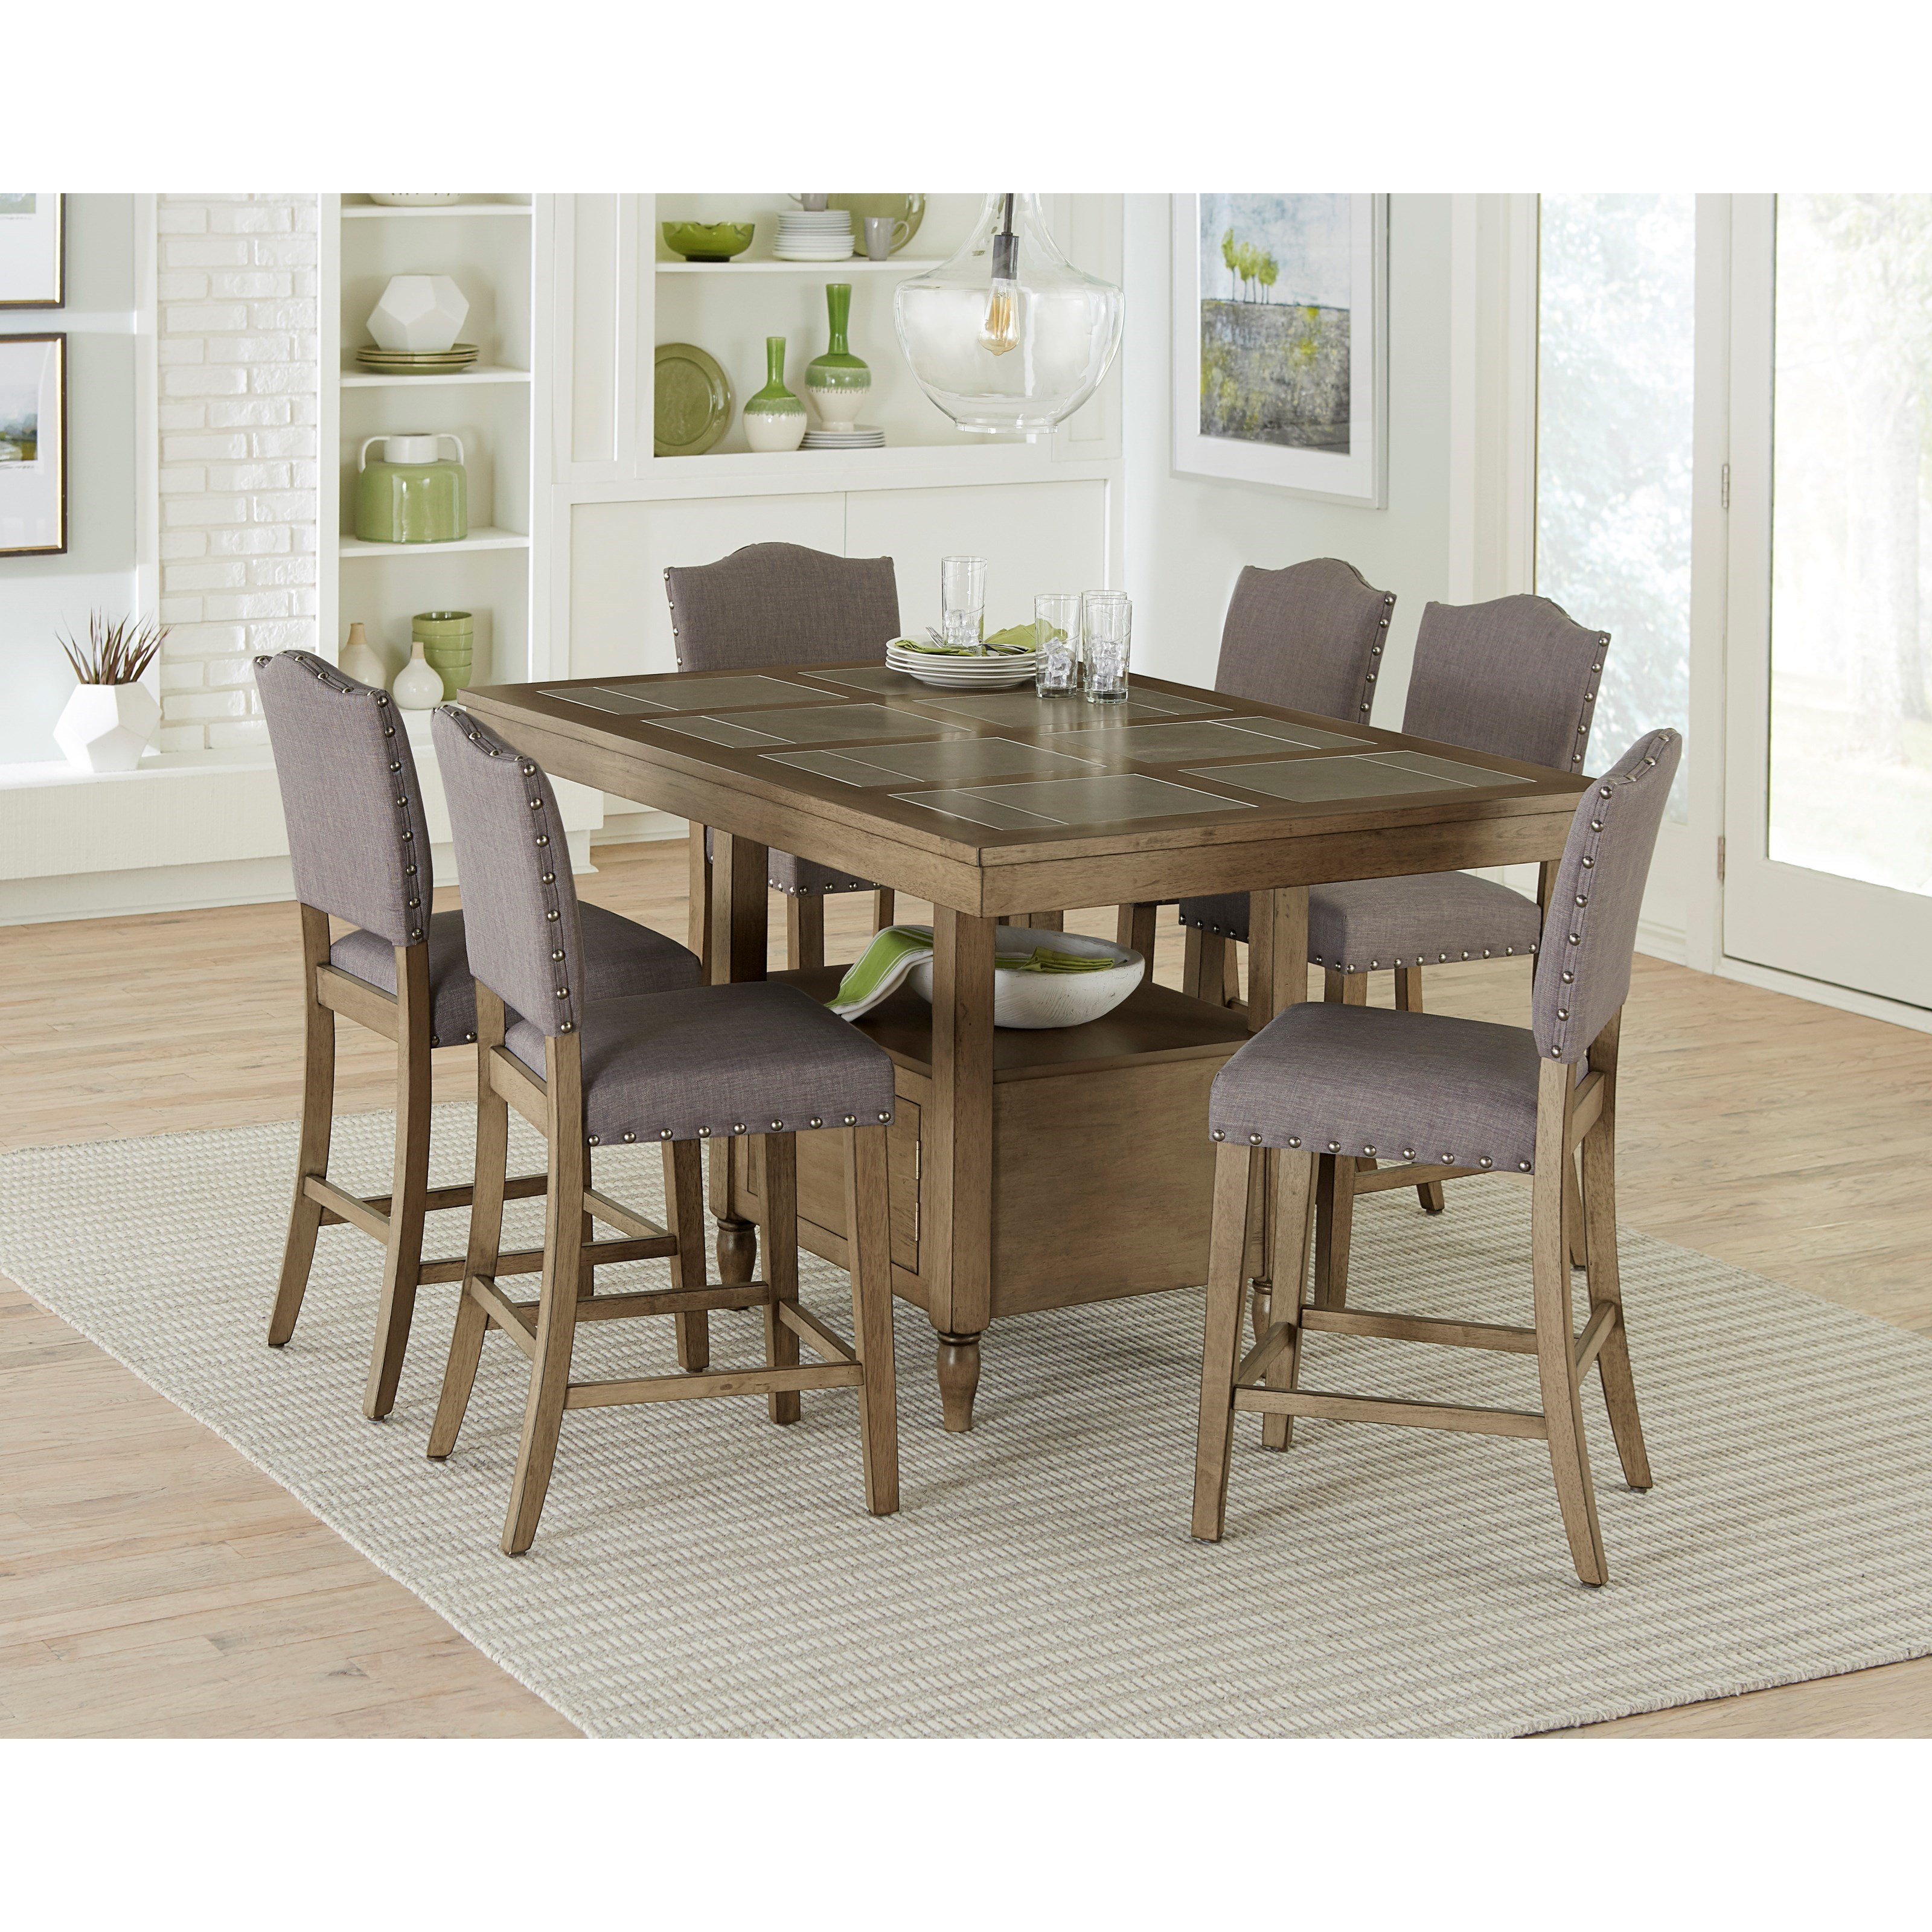 Keystone 9 Piece Counter Height Dining Table Set